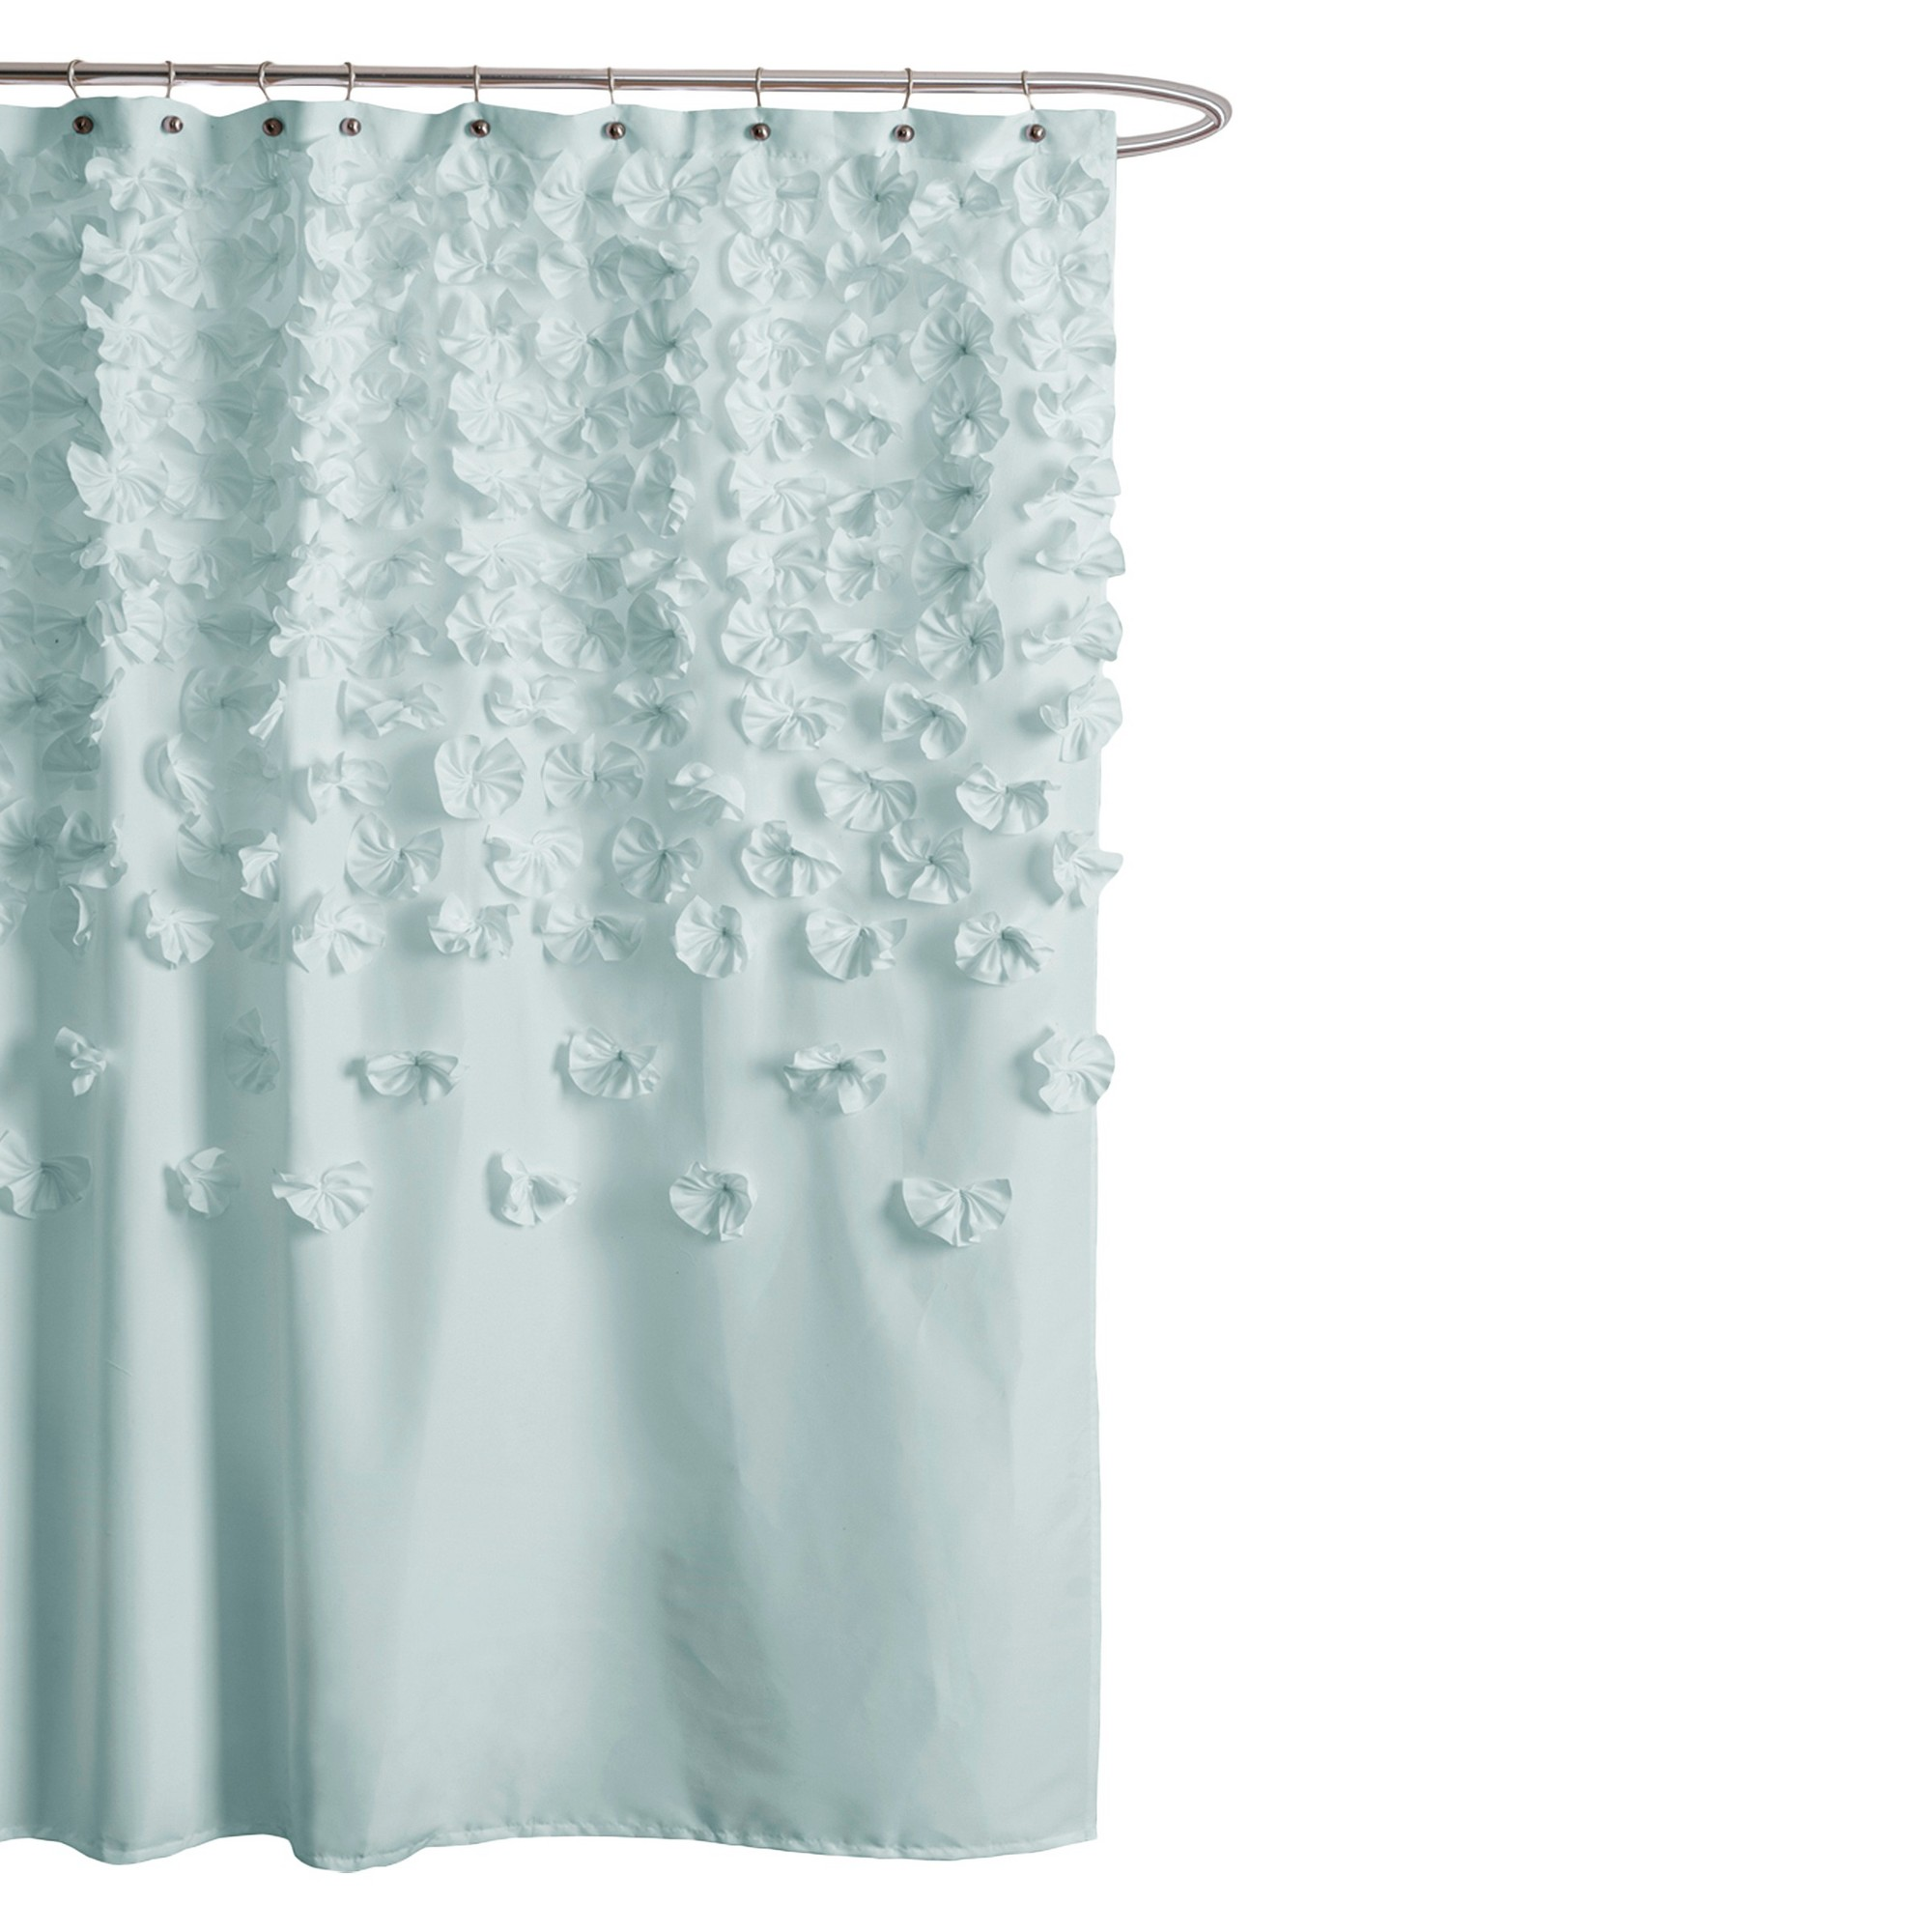 Lucia Scattered Flower Texture Shower Curtain Lush Decor Light